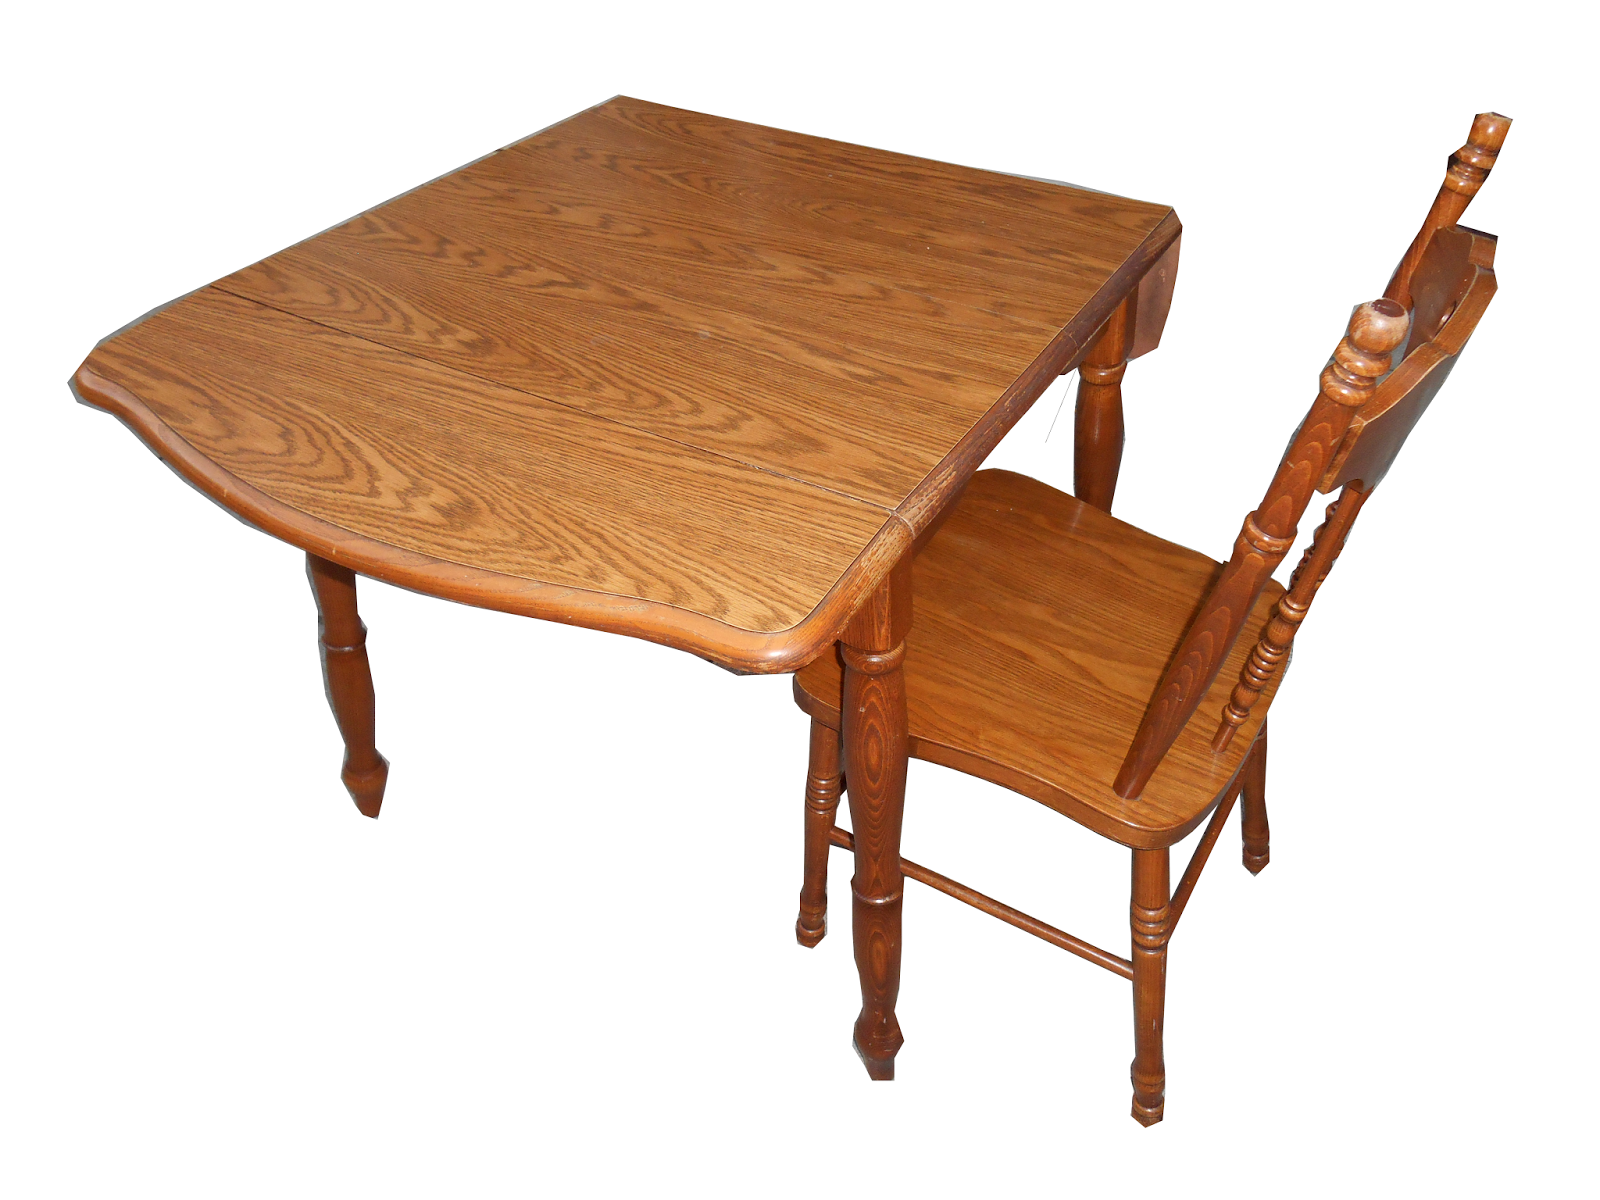 Drop leaf table with chairs mid century modern drop leaf for Kitchen table with leaf and chairs